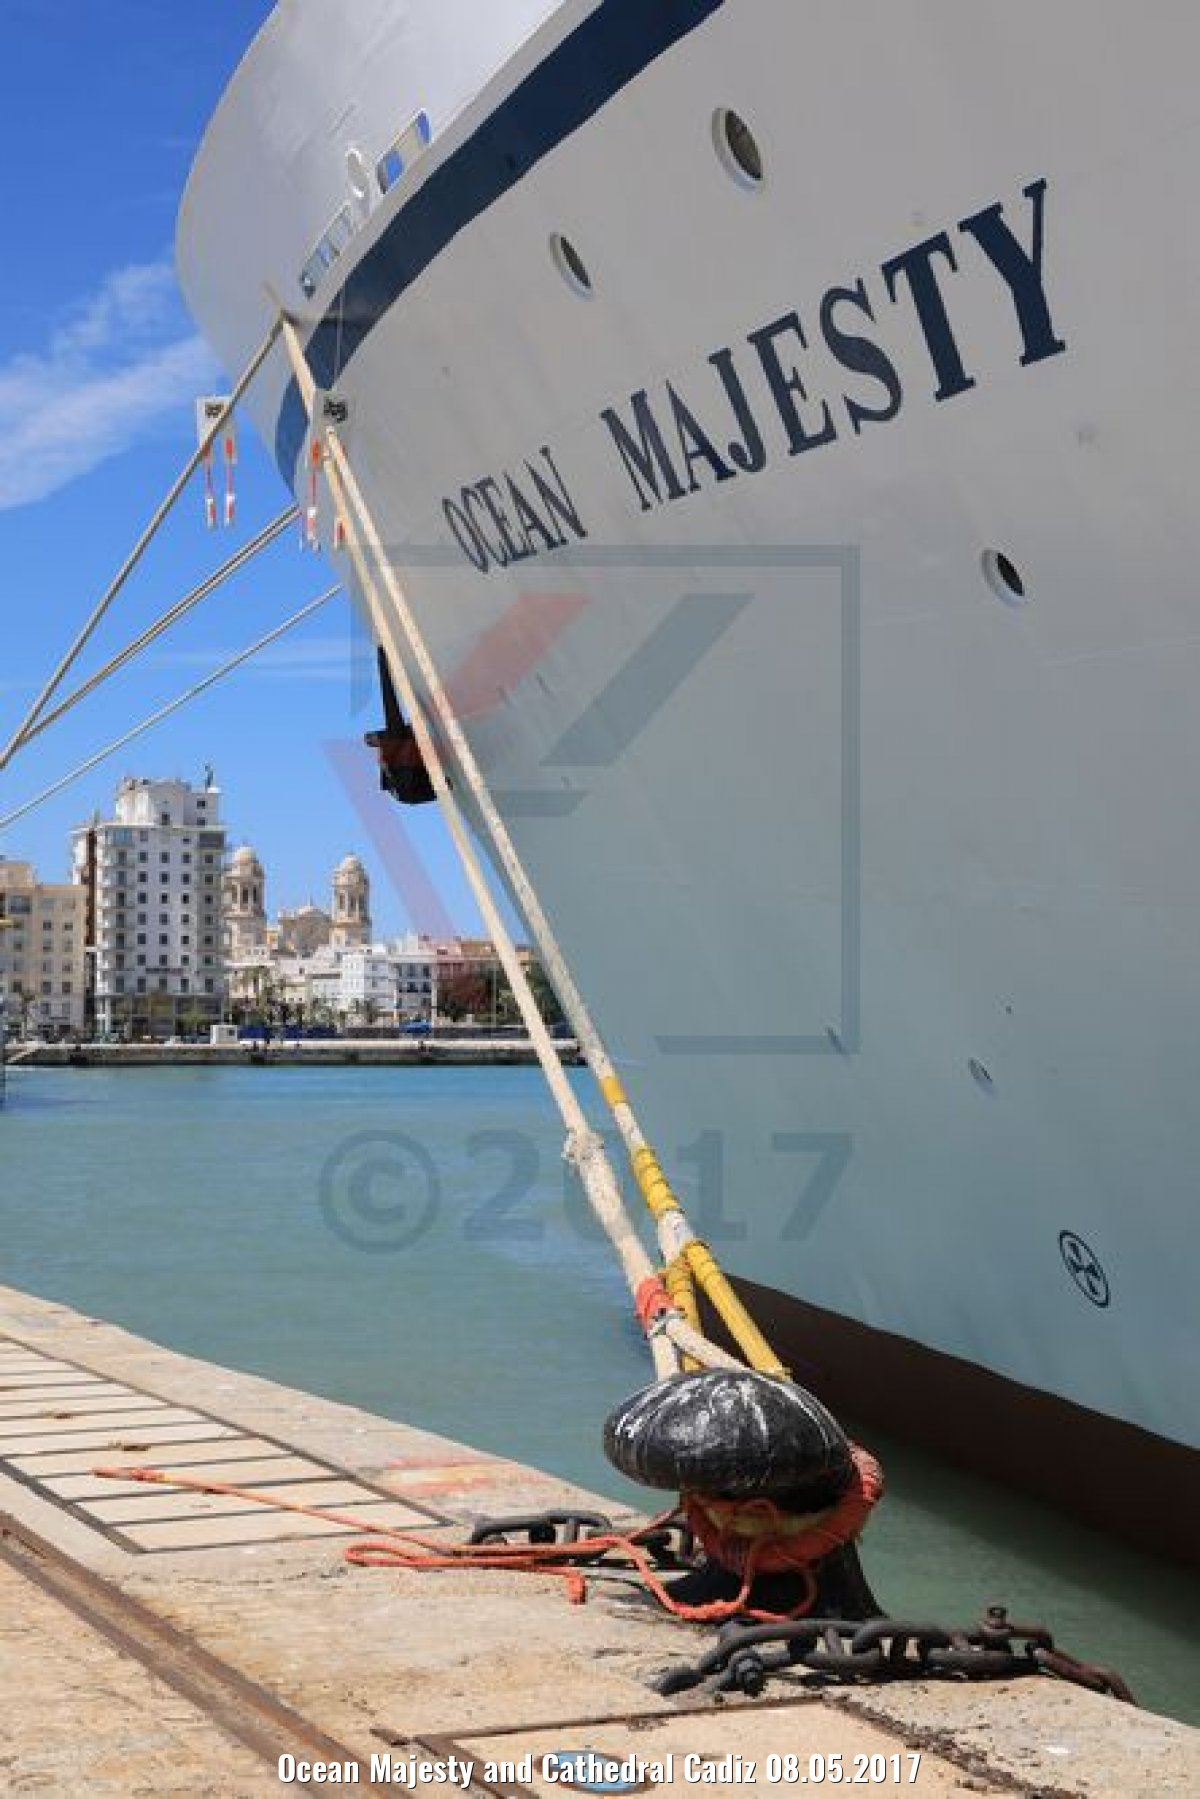 Ocean Majesty and Cathedral Cadiz 08.05.2017